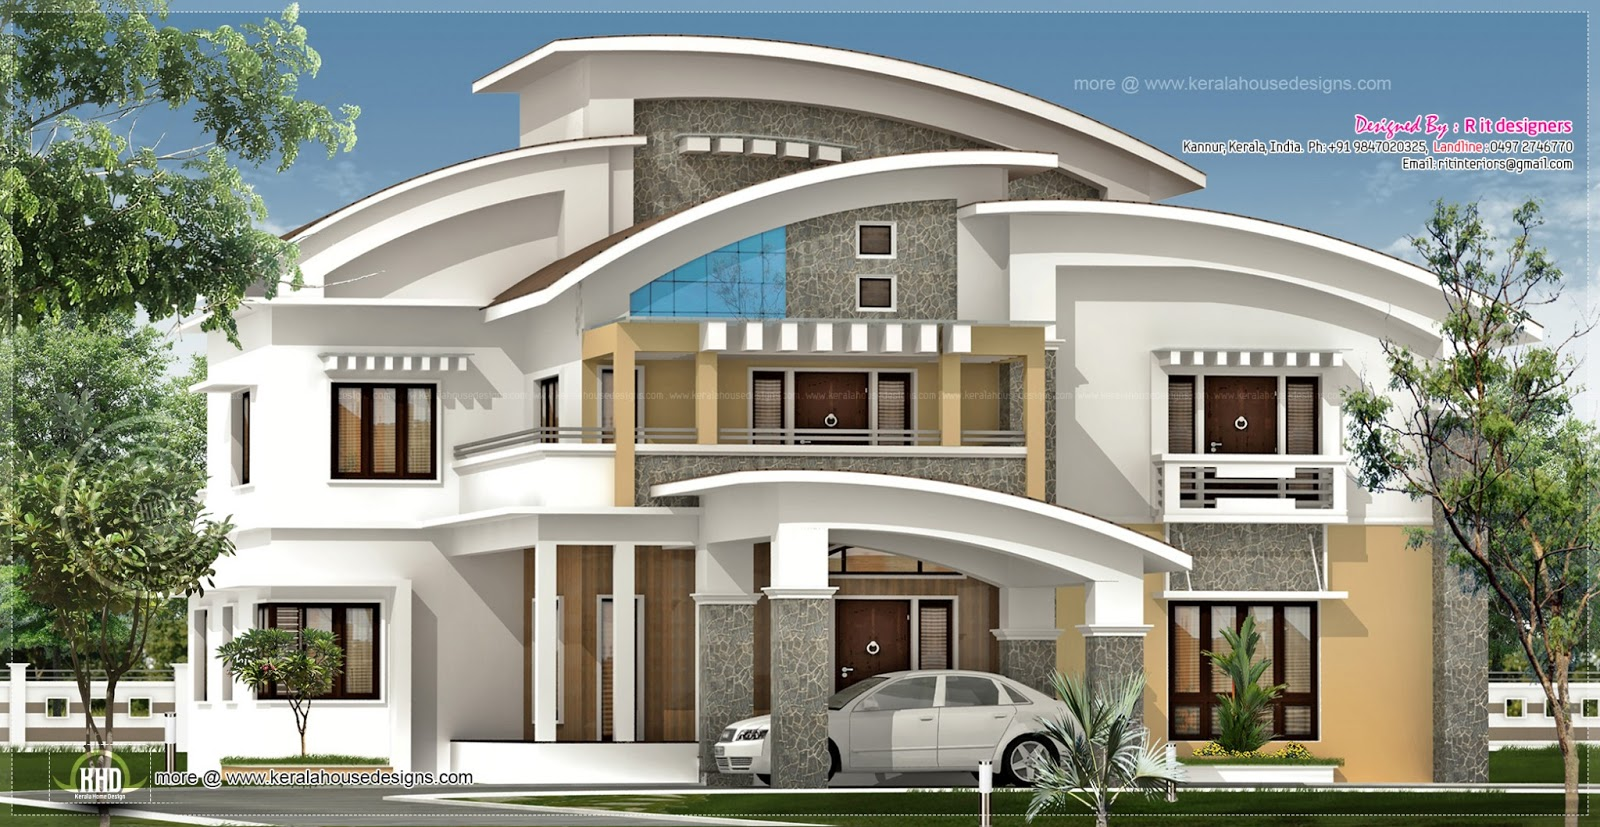 3750 Square Feet Luxury Villa Exterior House Design Plans